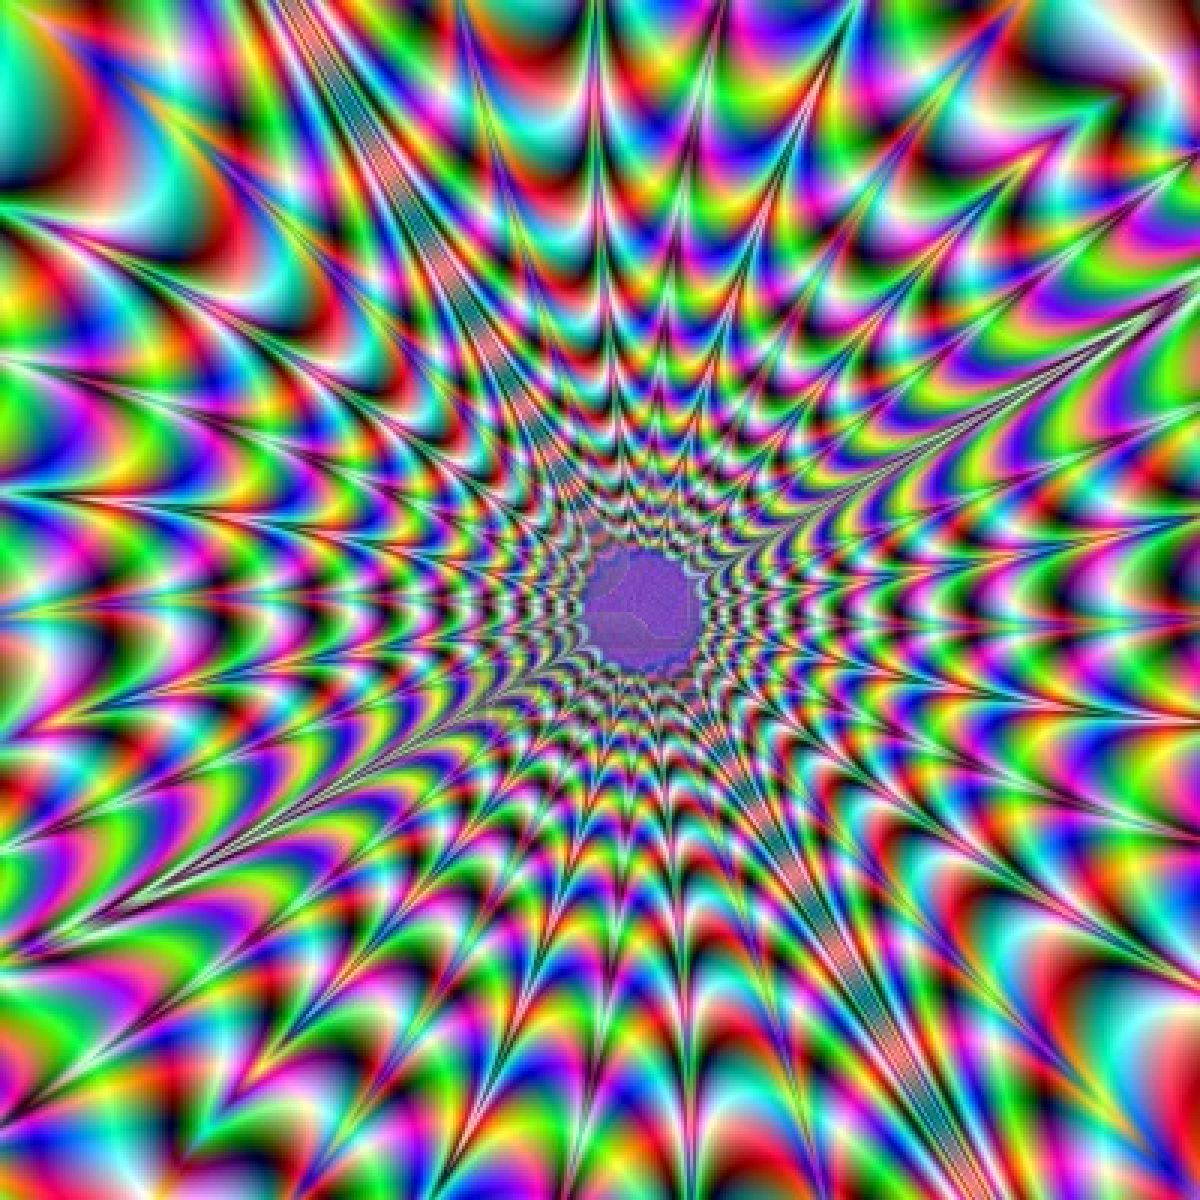 Trippy Animated Wallpapers